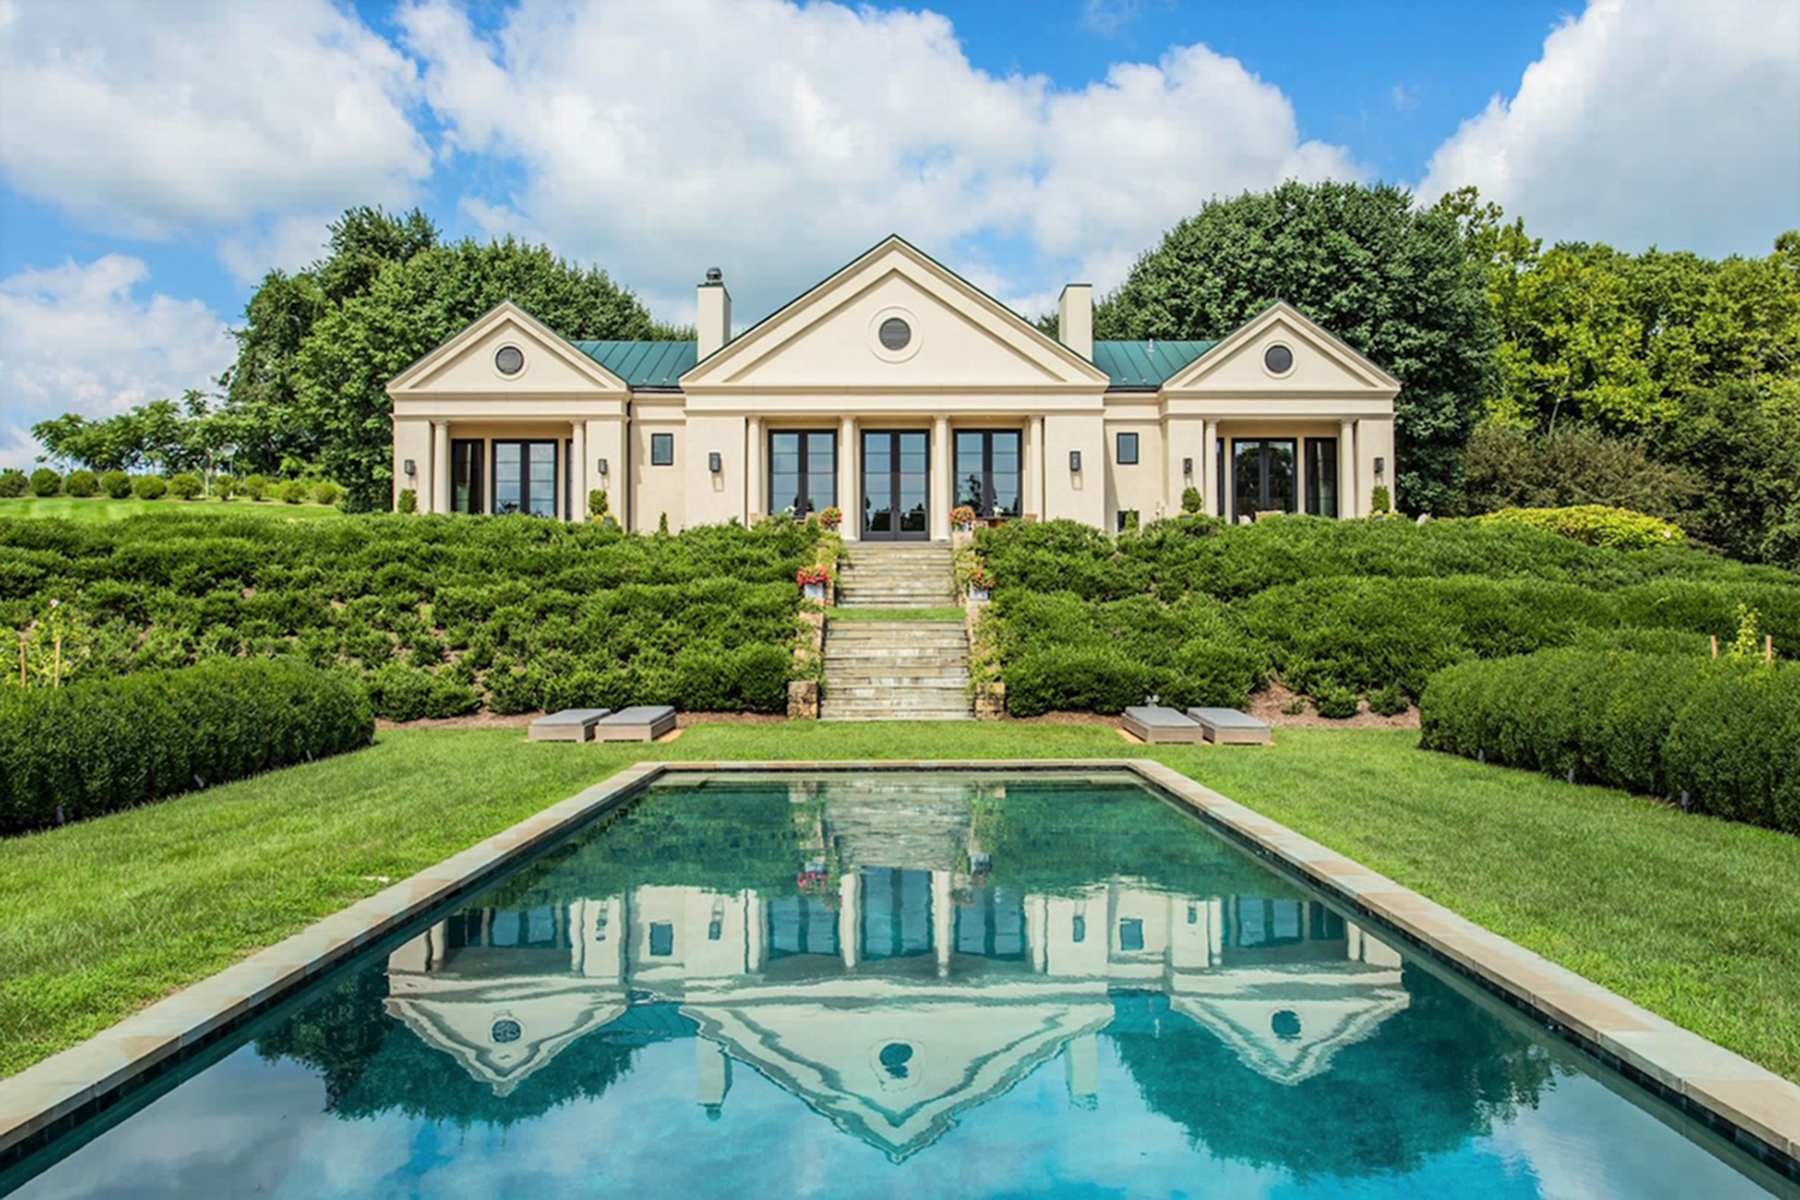 Property のために 売買 アット Sageview 1388 Crenshaw Road Upperville, バージニア 20184 アメリカ